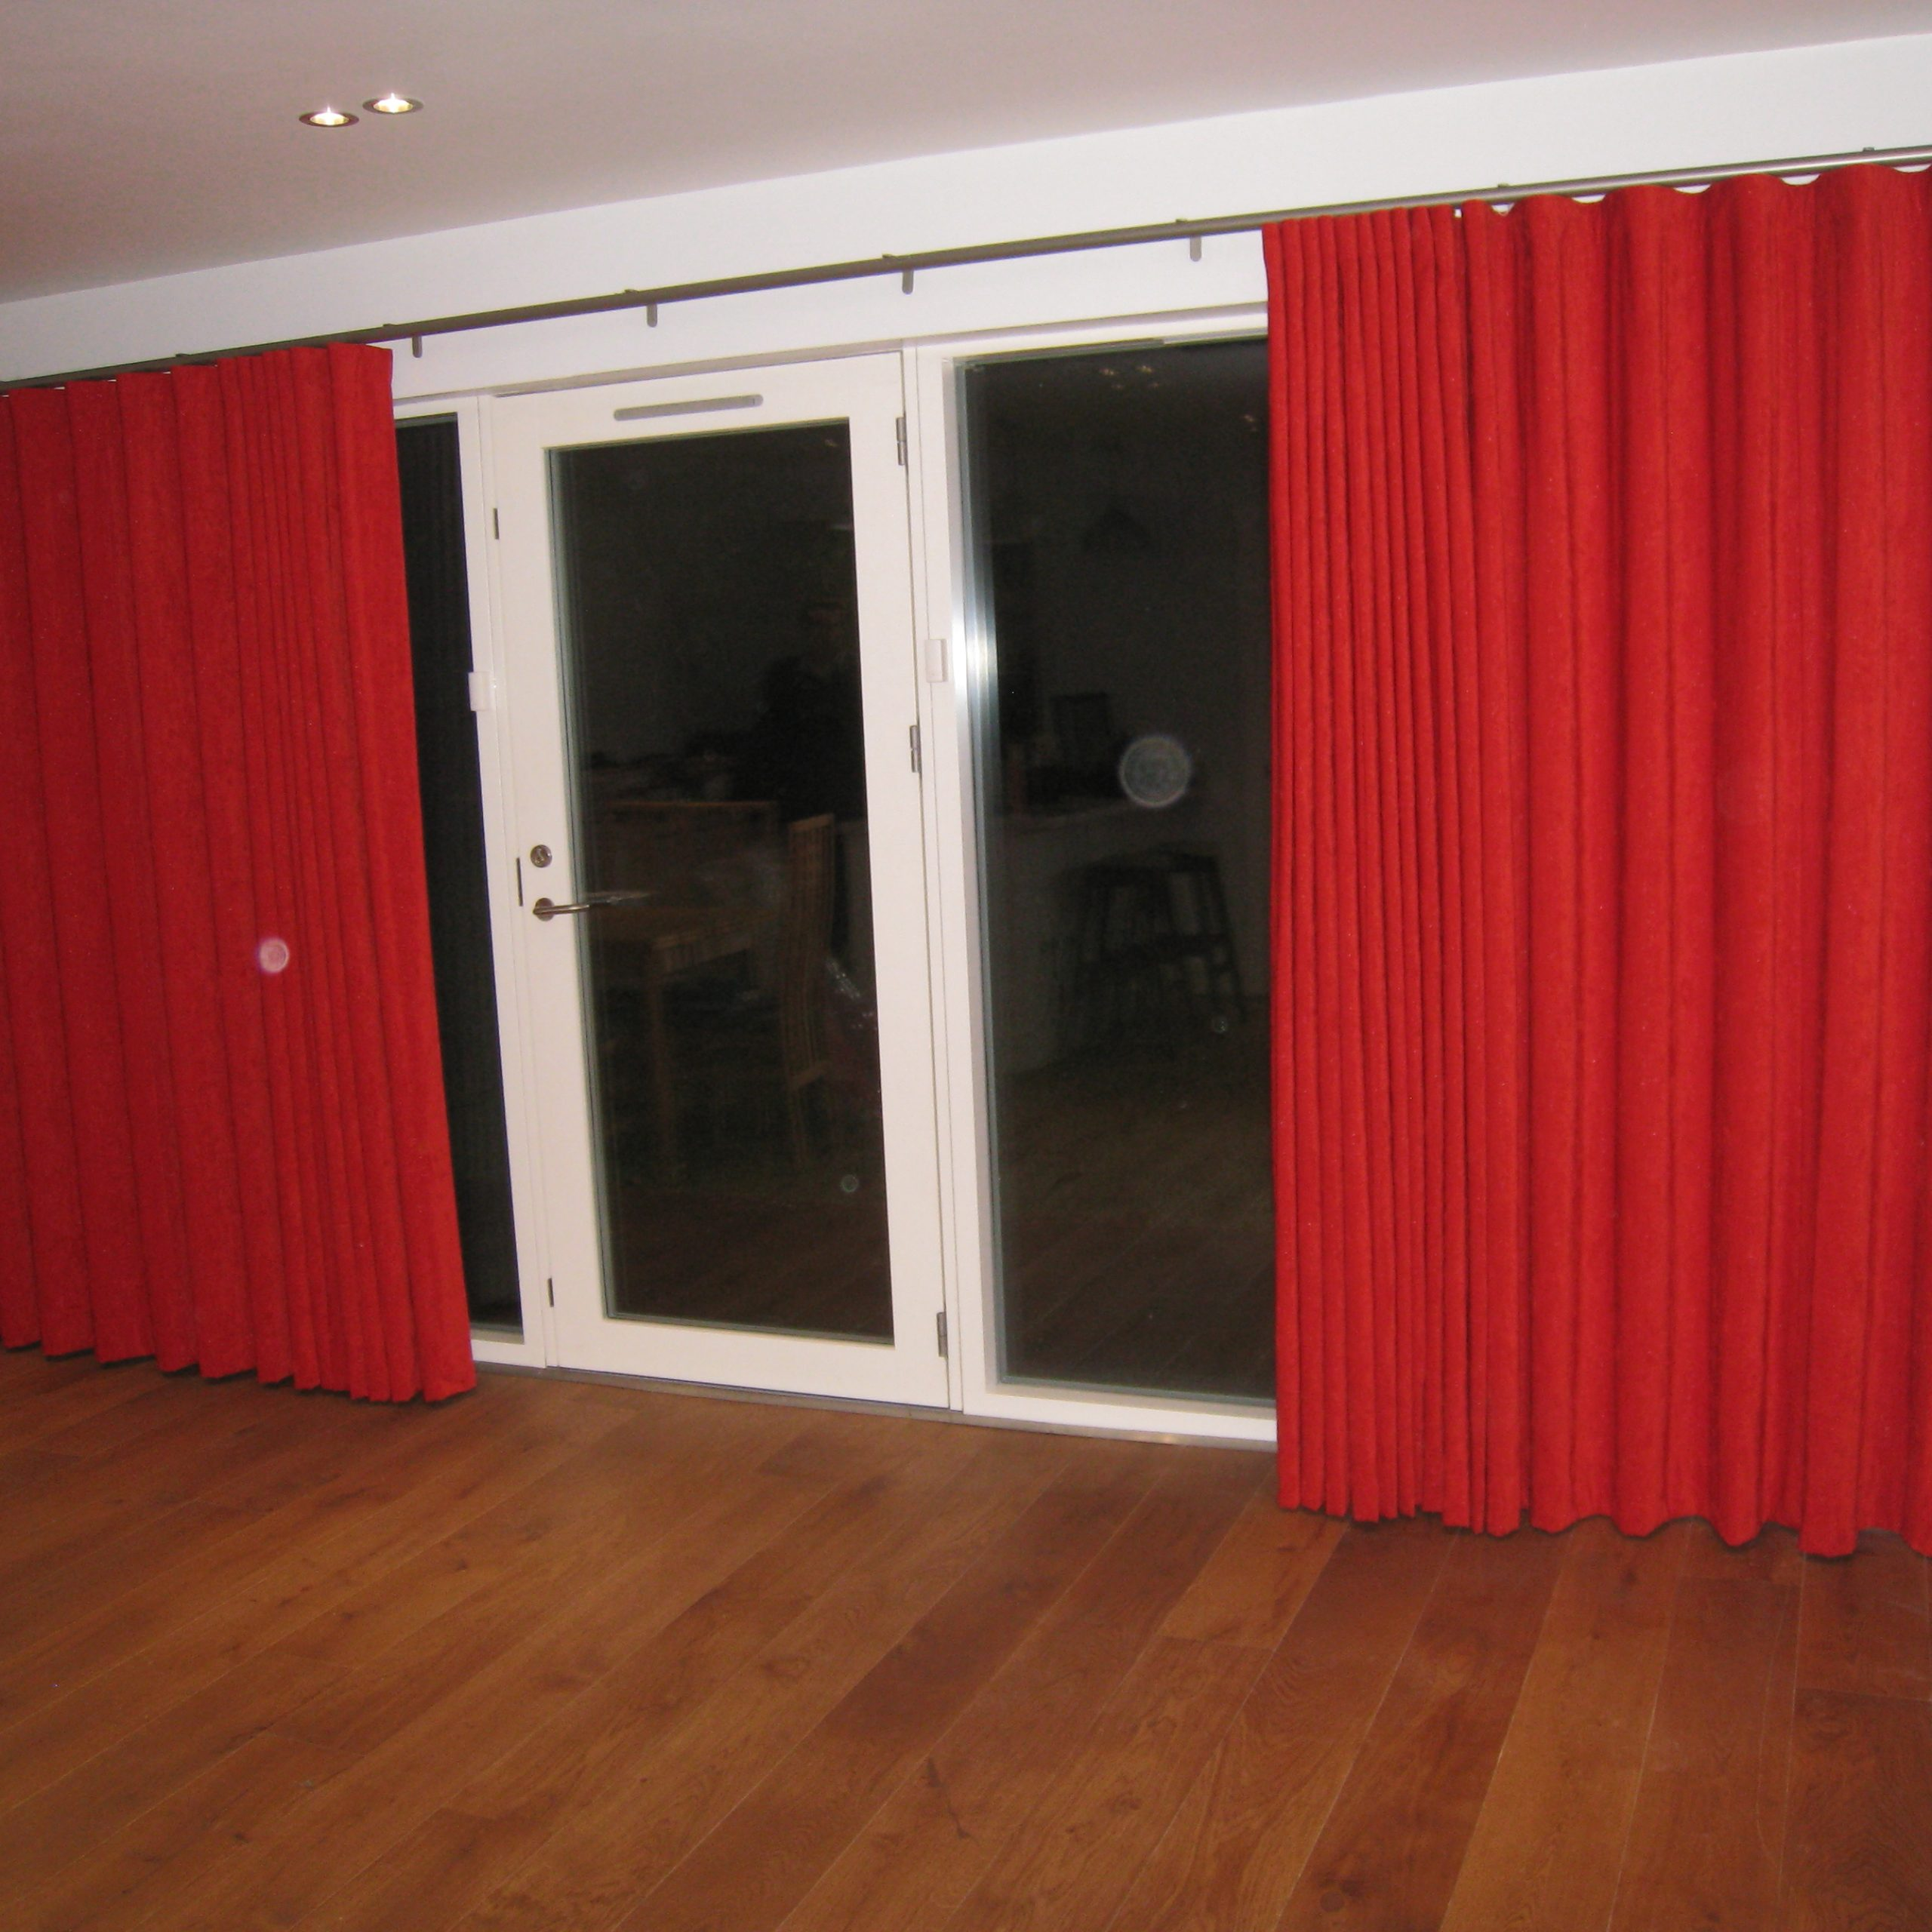 Wave Curtains On Silent Gliss Metropole, Craigleith With Best And Newest Inez Patio Door Window Curtain Panels (View 20 of 20)